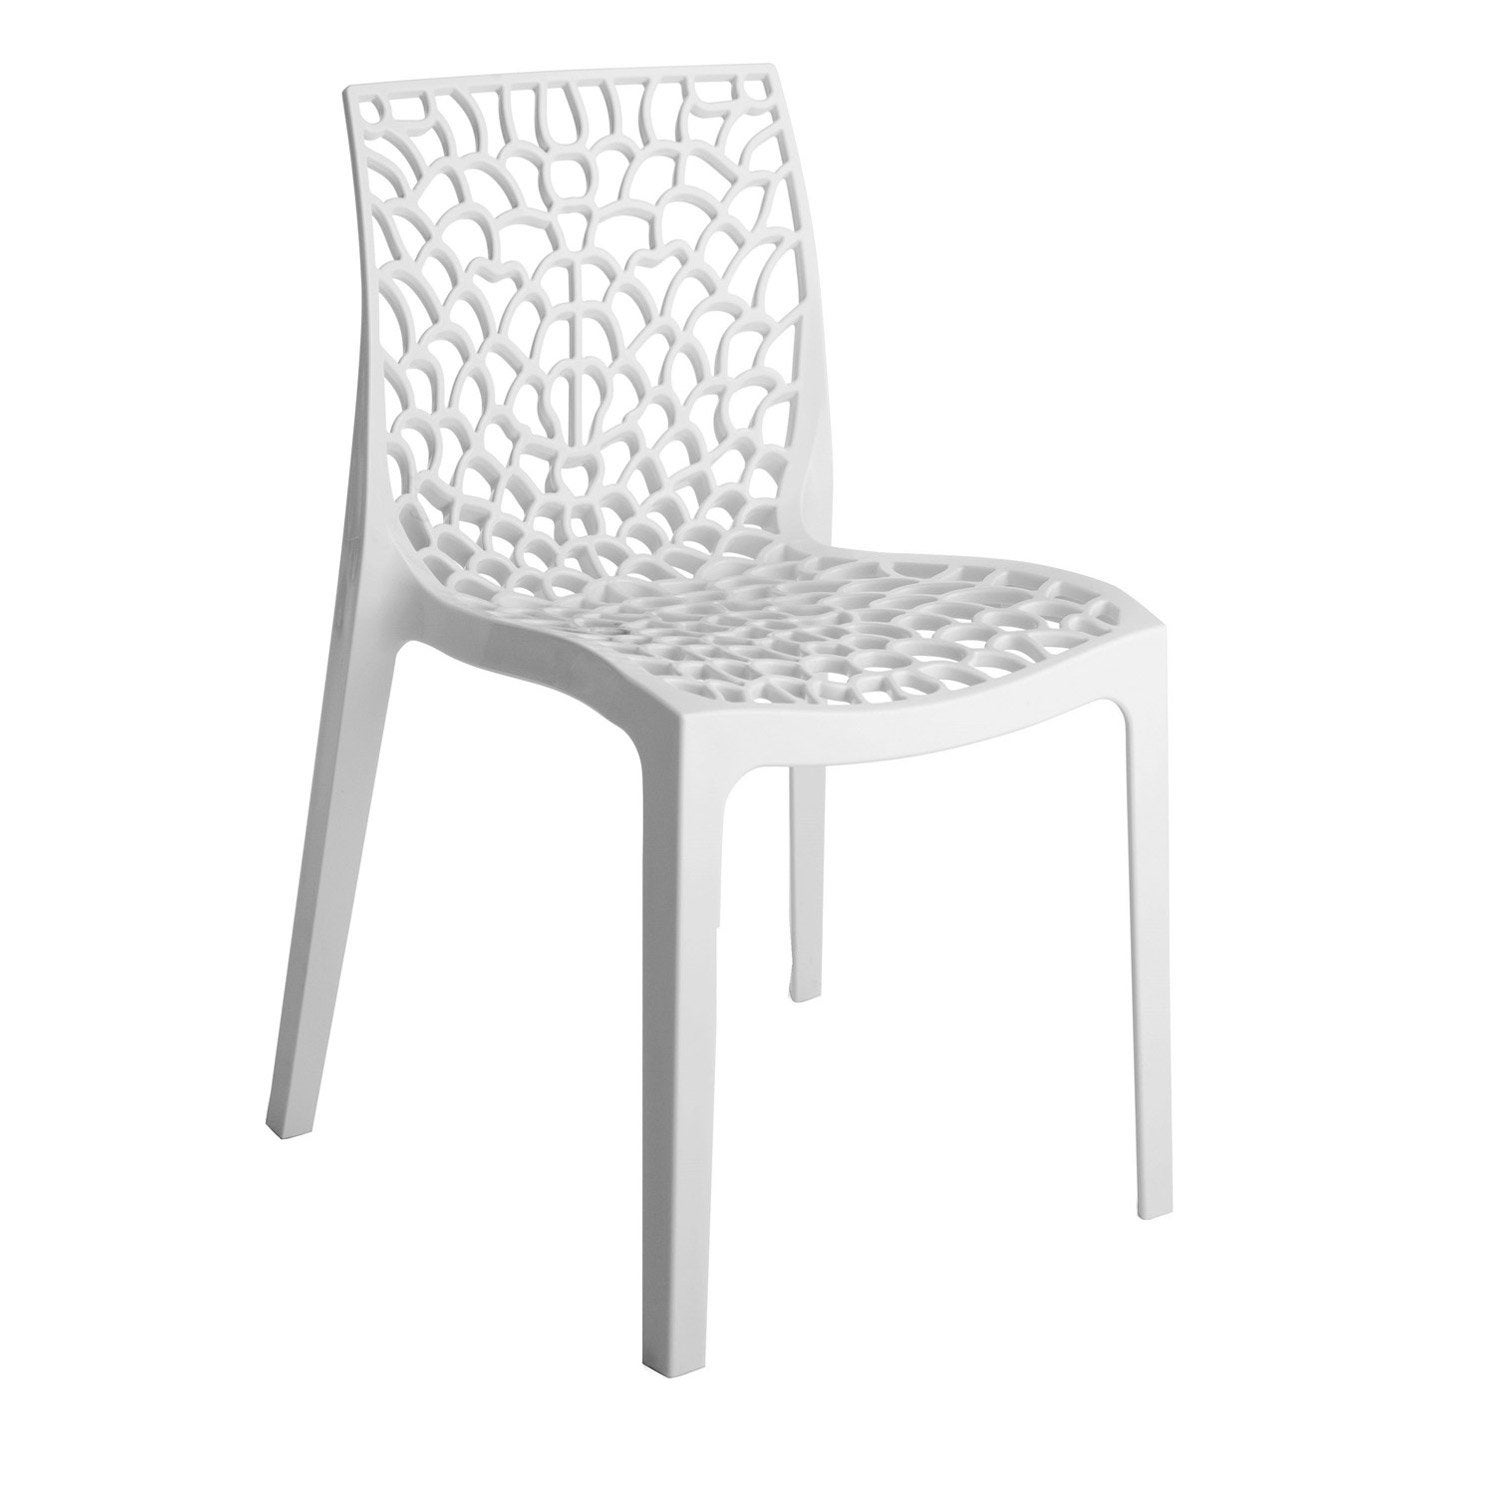 Chaise de jardin en r sine grafik blanc leroy merlin for Chaise longue en resine